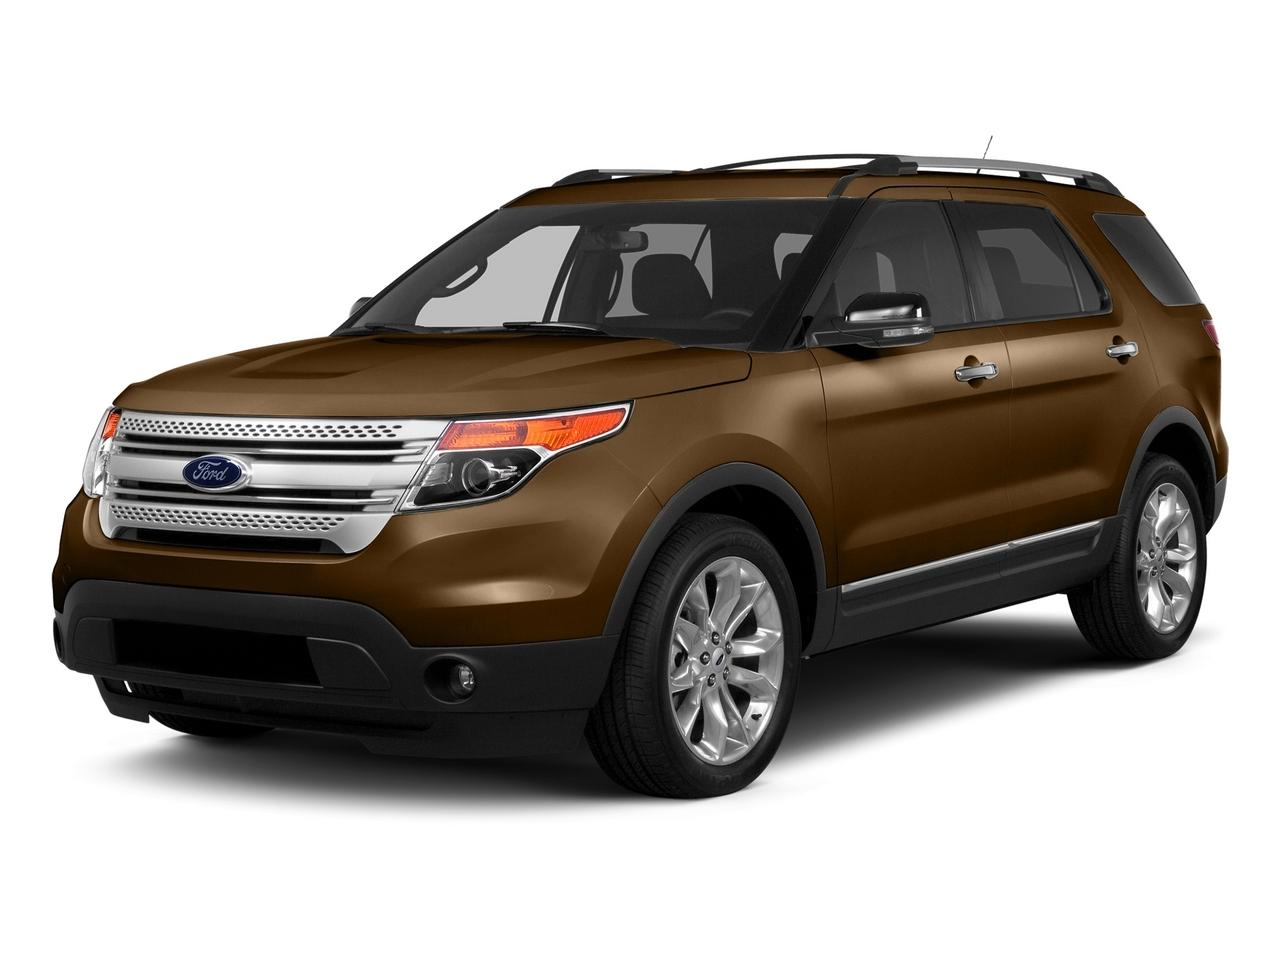 2015 Ford Explorer Vehicle Photo in Tucson, AZ 85712